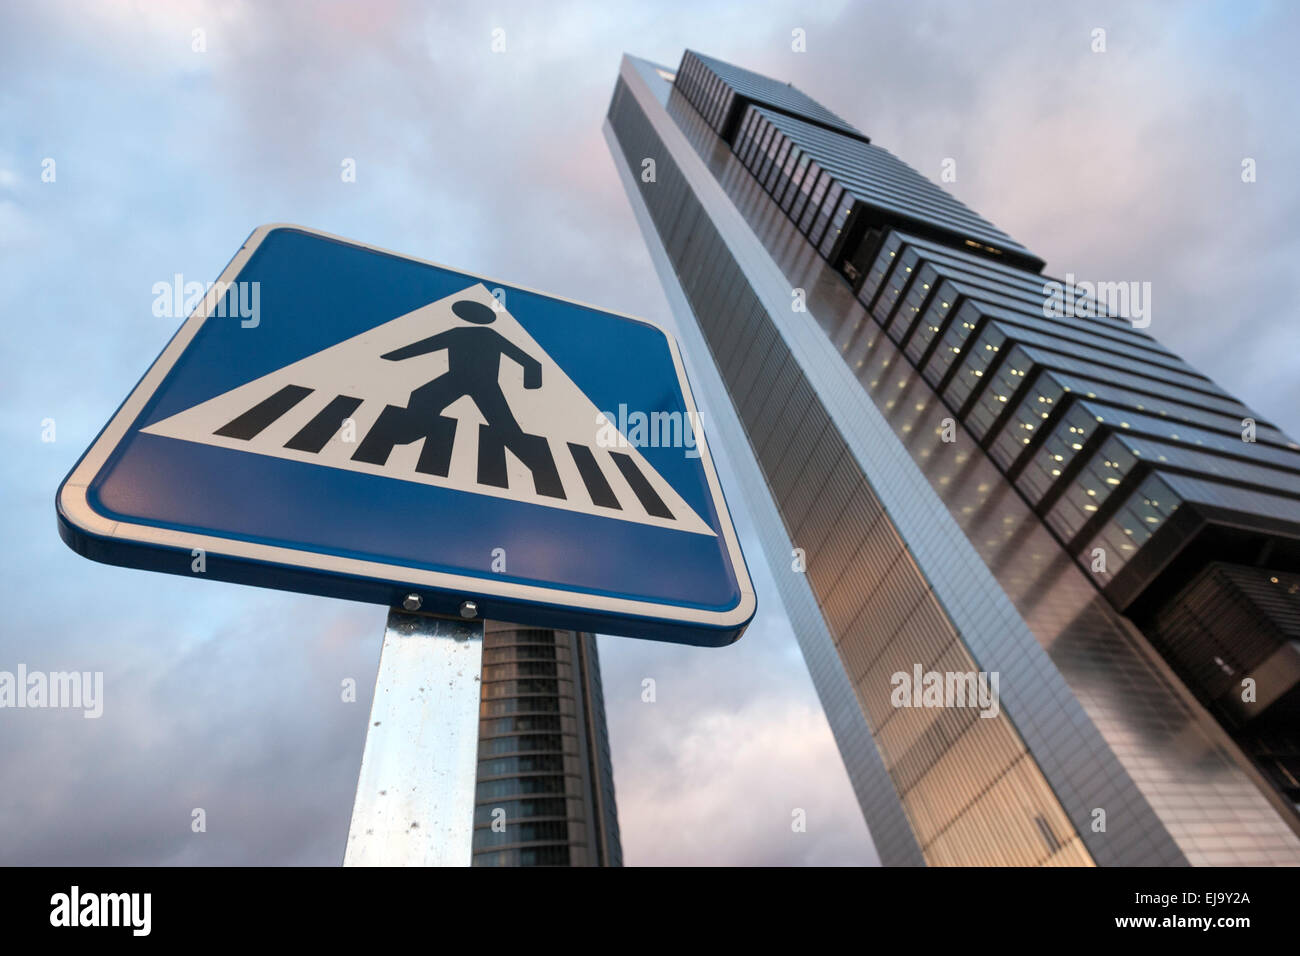 zebra-crossing-sign-and-torre-bankia-by-